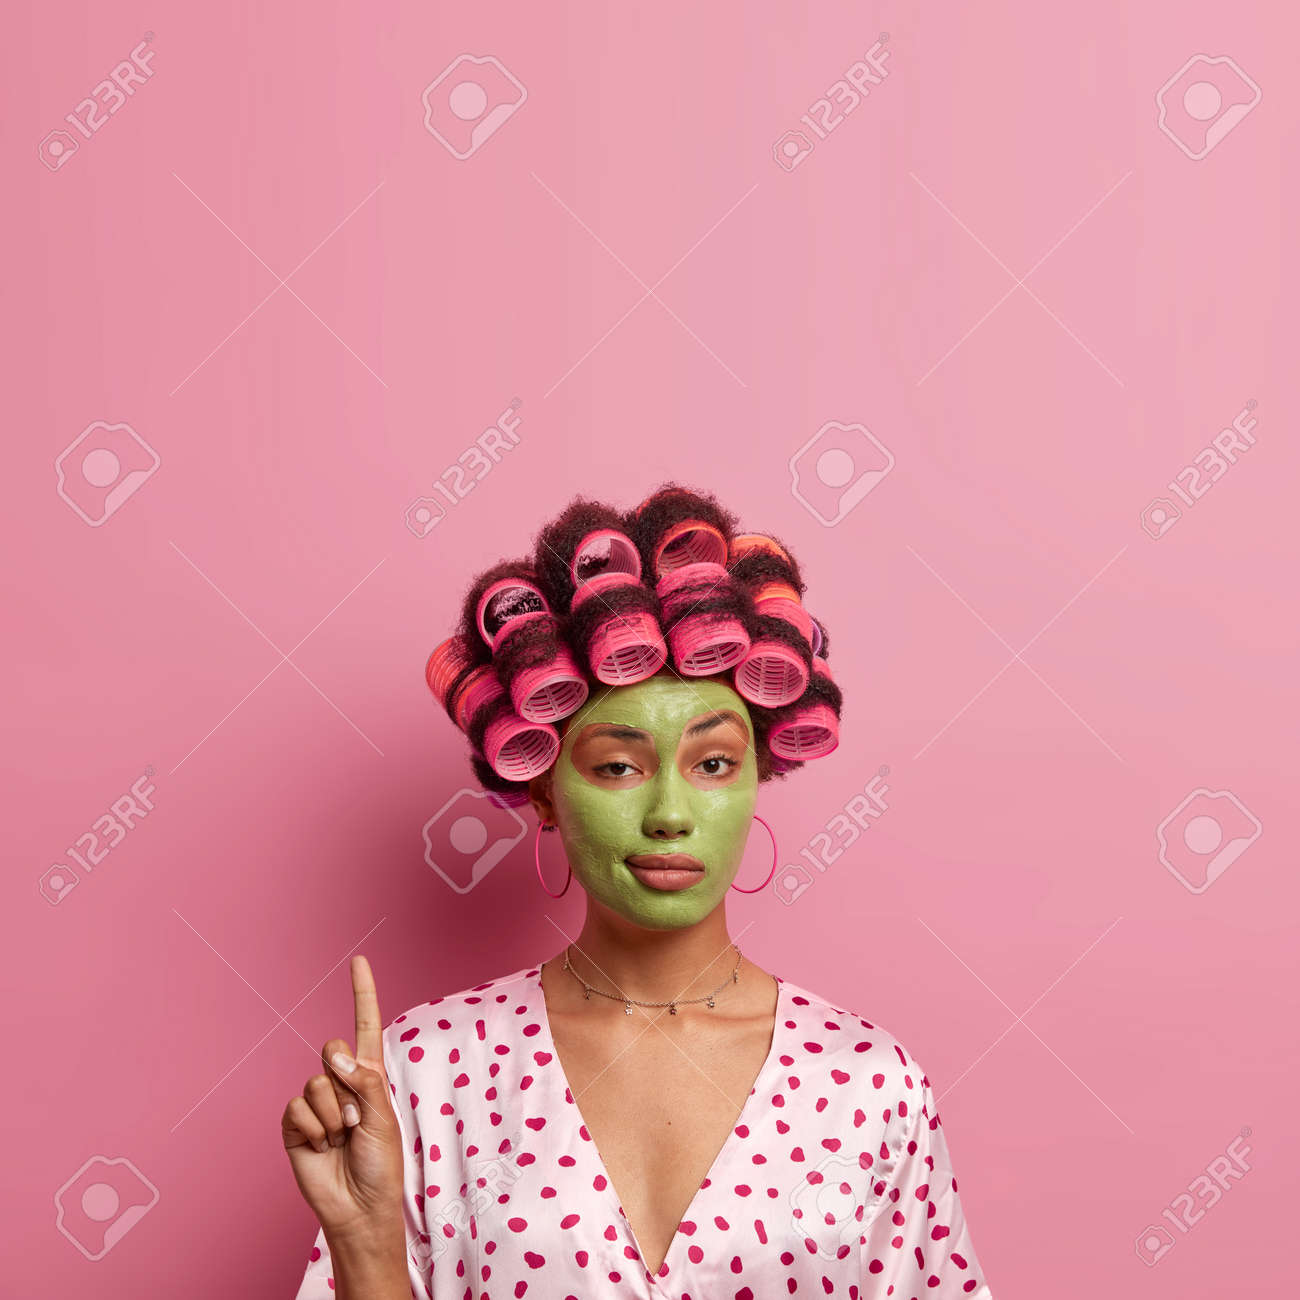 Confident ethnic woman with hair rollers, green facial mask, looks mysteriously at camera, points above, shows copy space for your advertisement, pink background. Beauty, cosmetology concept - 158962132